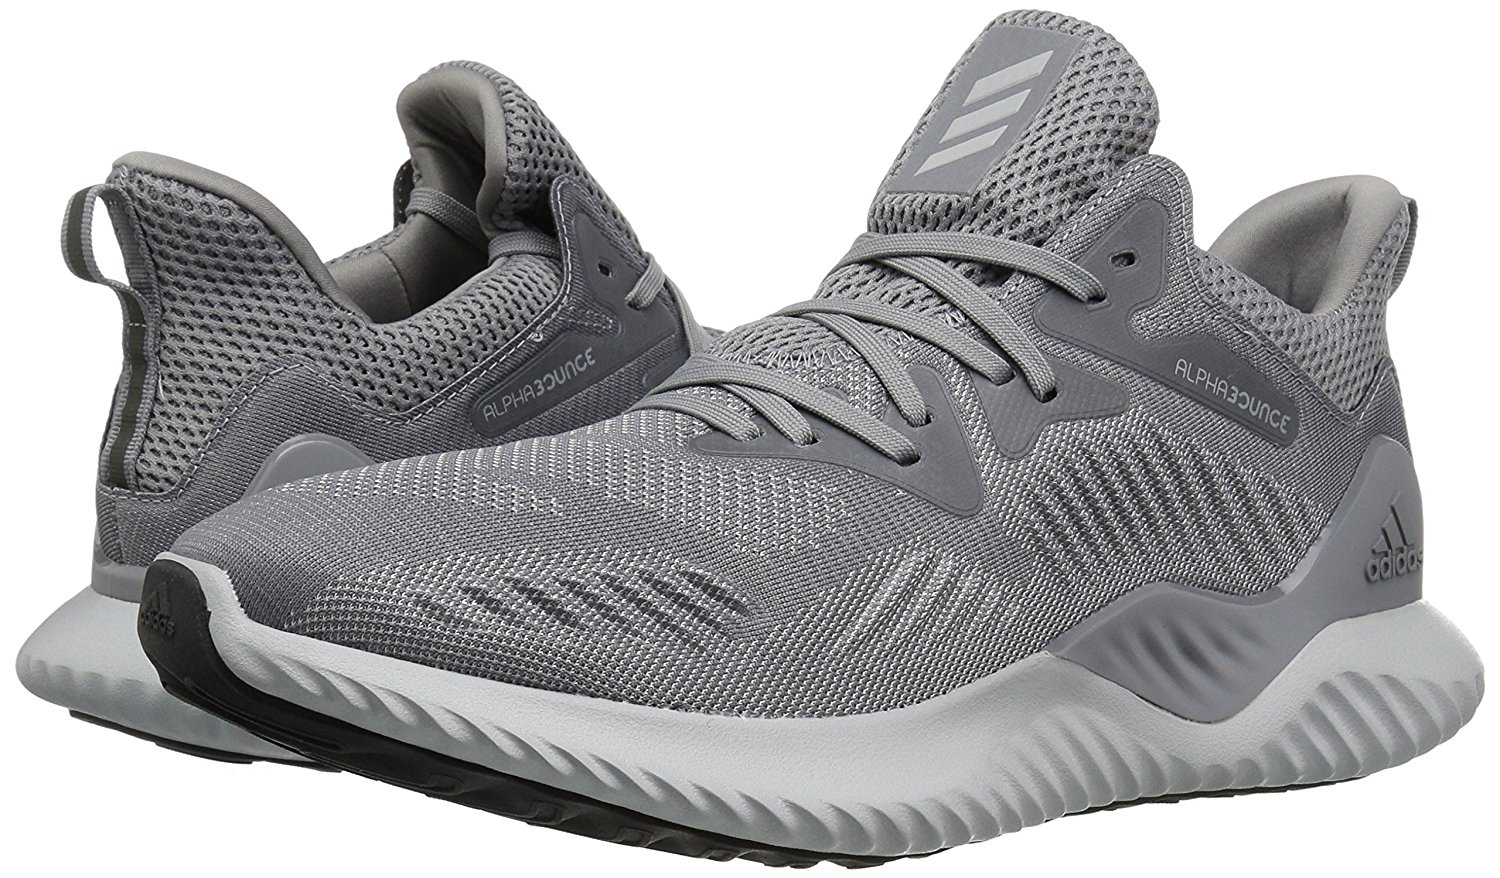 fe426eaaf2d0e Adidas Alphabounce Beyond Tested for Performance in 2019